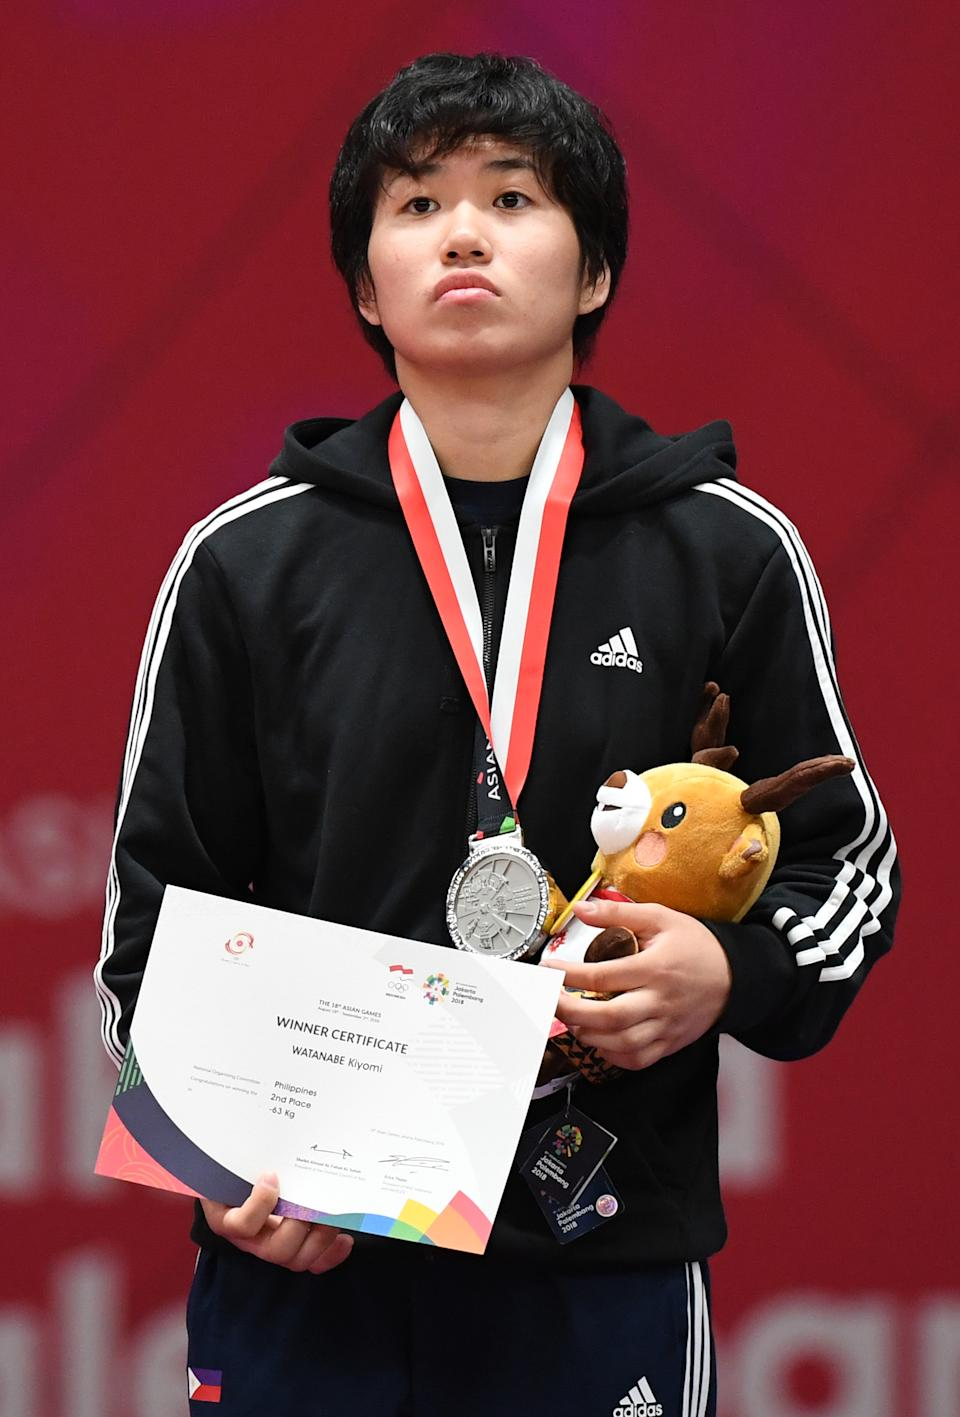 Silver medallist Philippiness Kiyomi Watanabe stands during the awards ceremony women's judo -63 kg at the 2018 Asian Games in Jakarta on August 30, 2018. (Photo by SONNY TUMBELAKA / AFP)        (Photo credit should read SONNY TUMBELAKA/AFP via Getty Images)